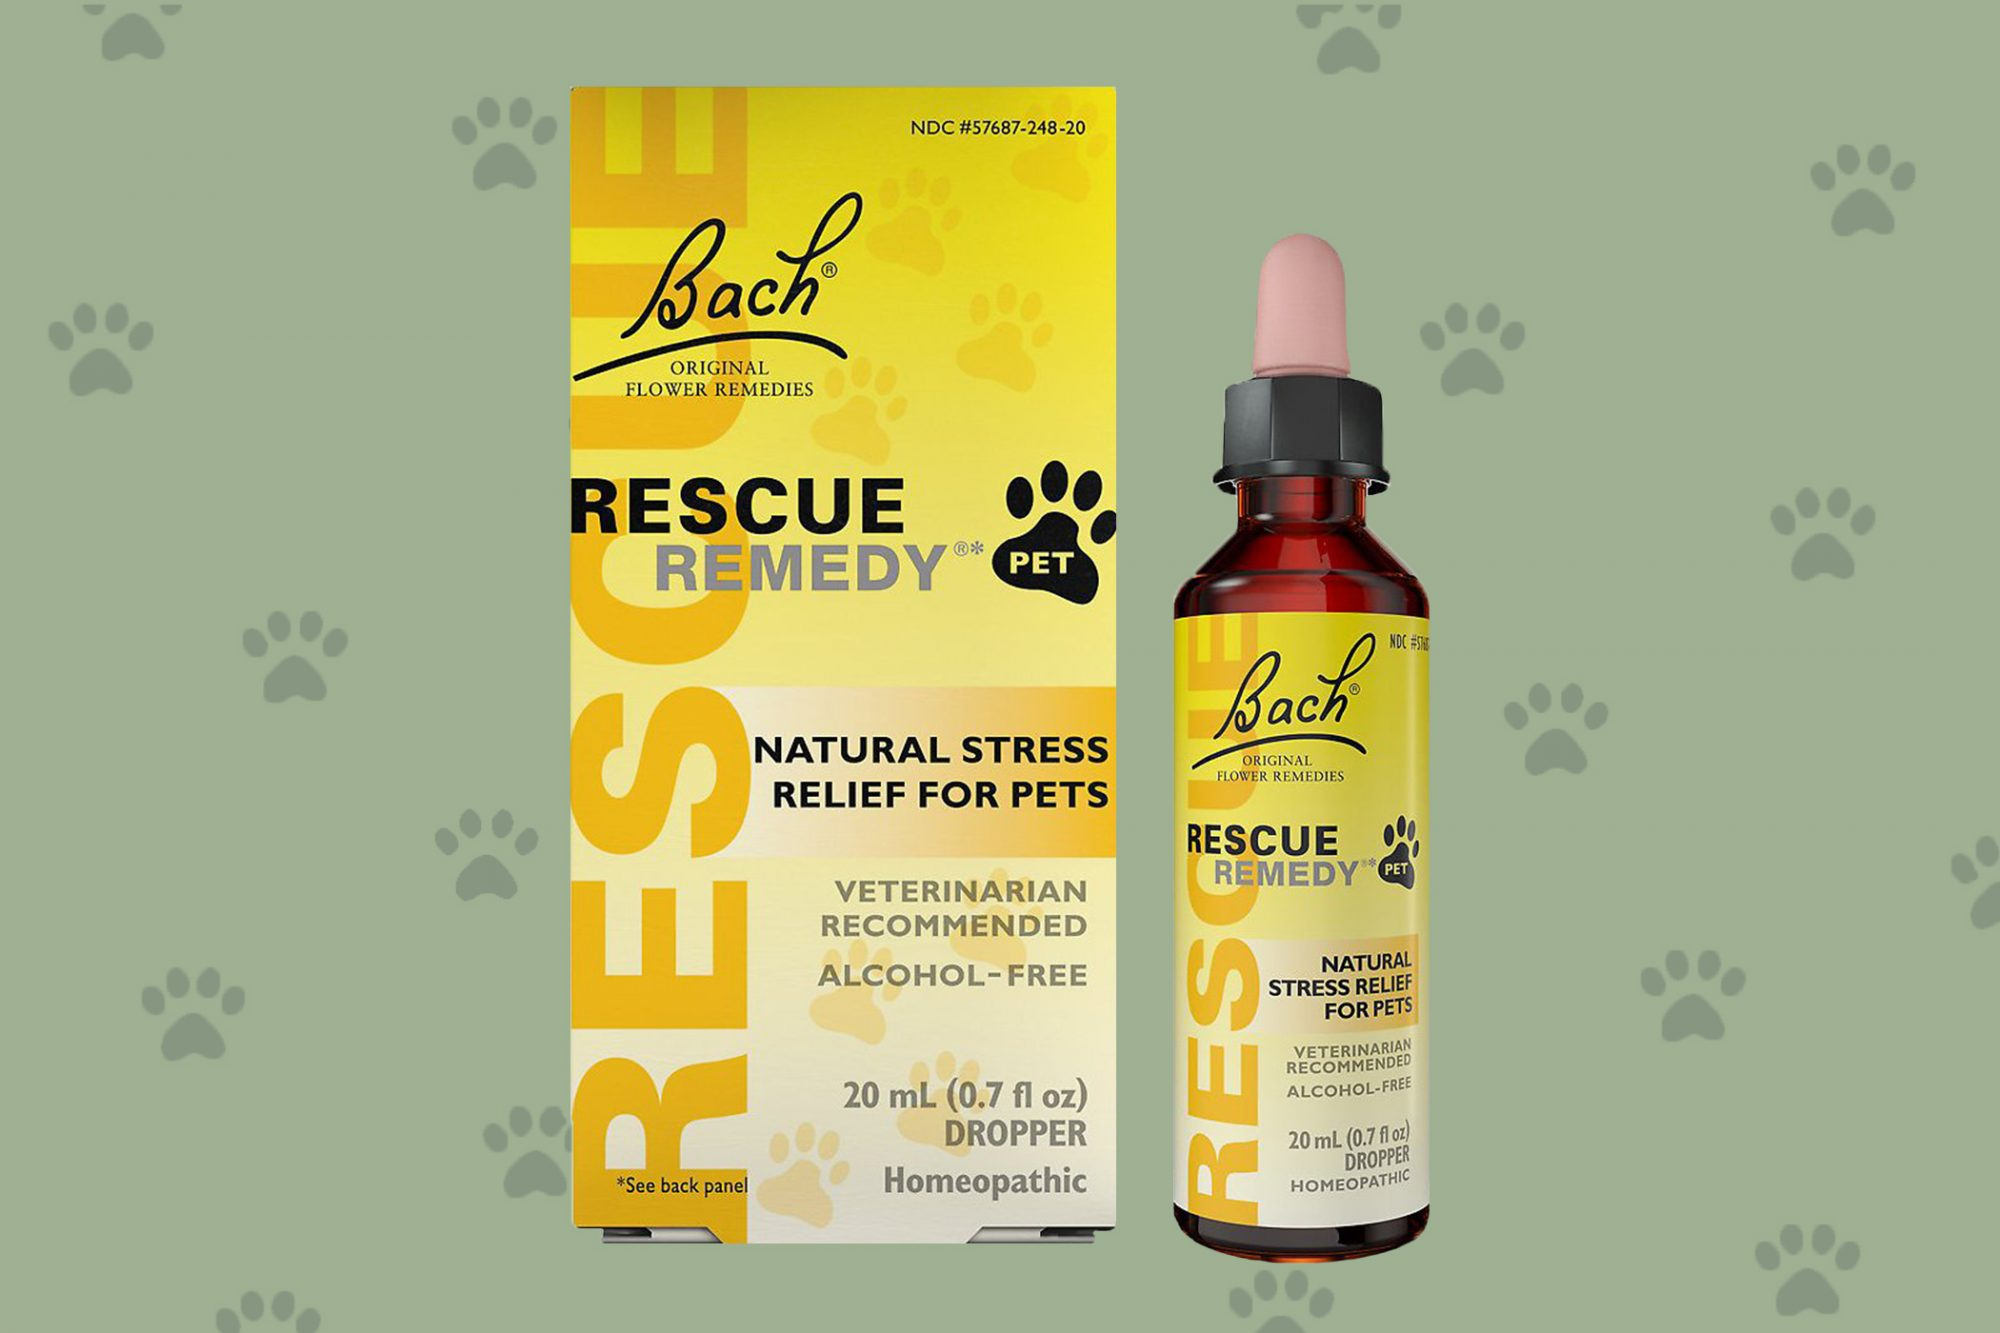 Rescue Remedy pet remedy product photo